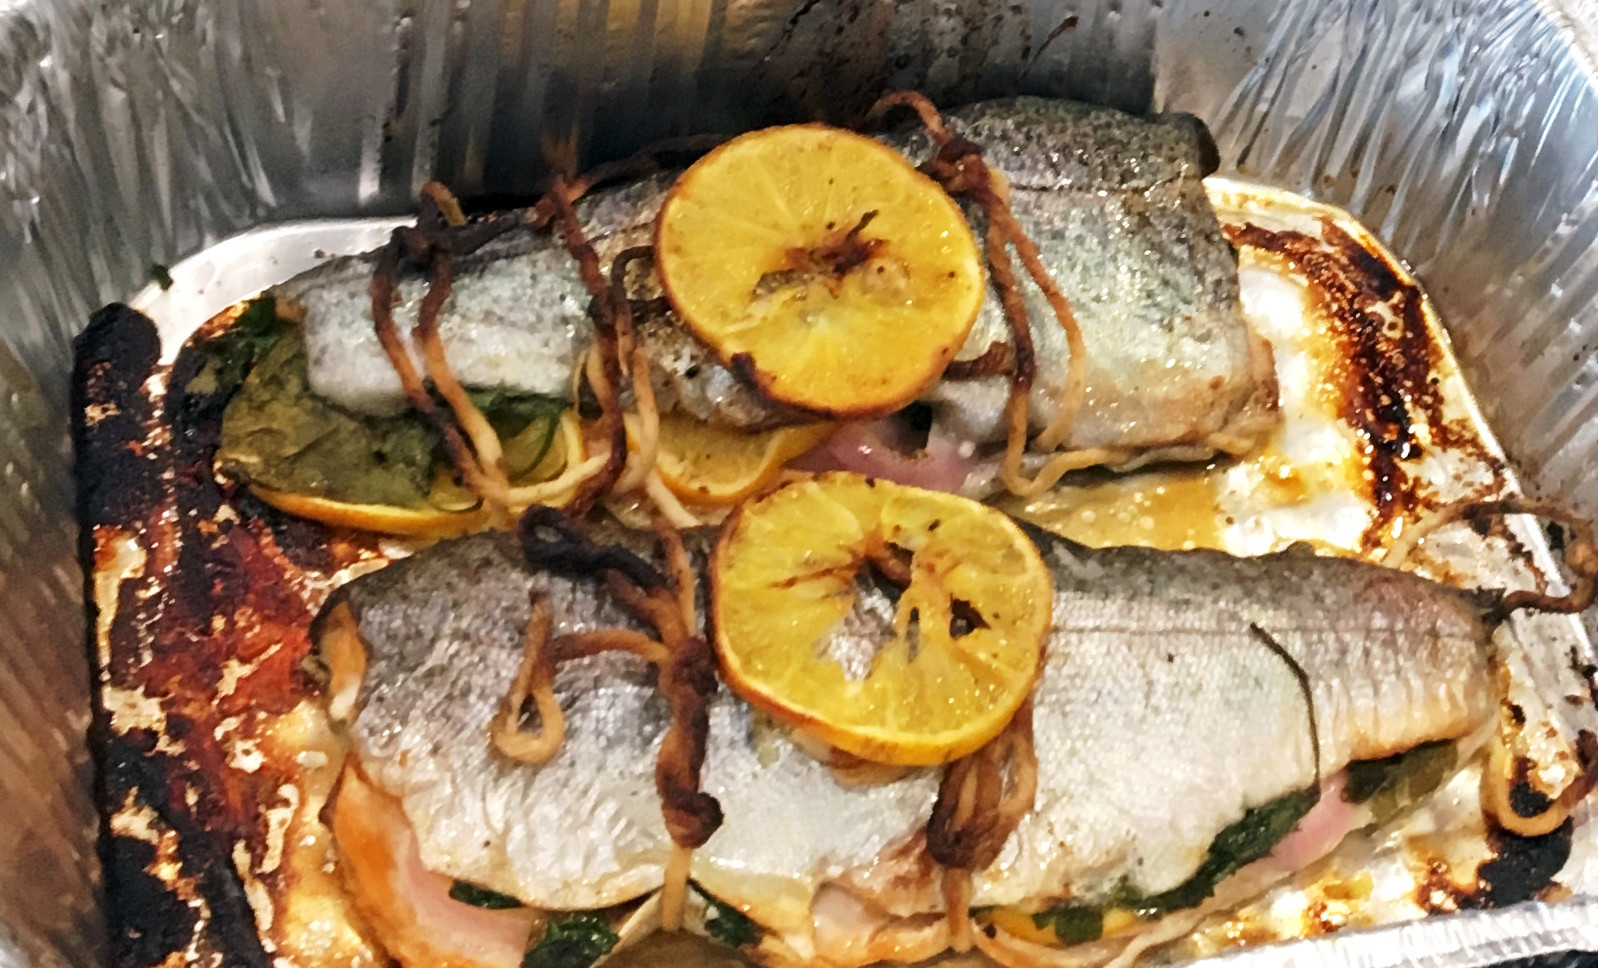 The trout, partially cooked.